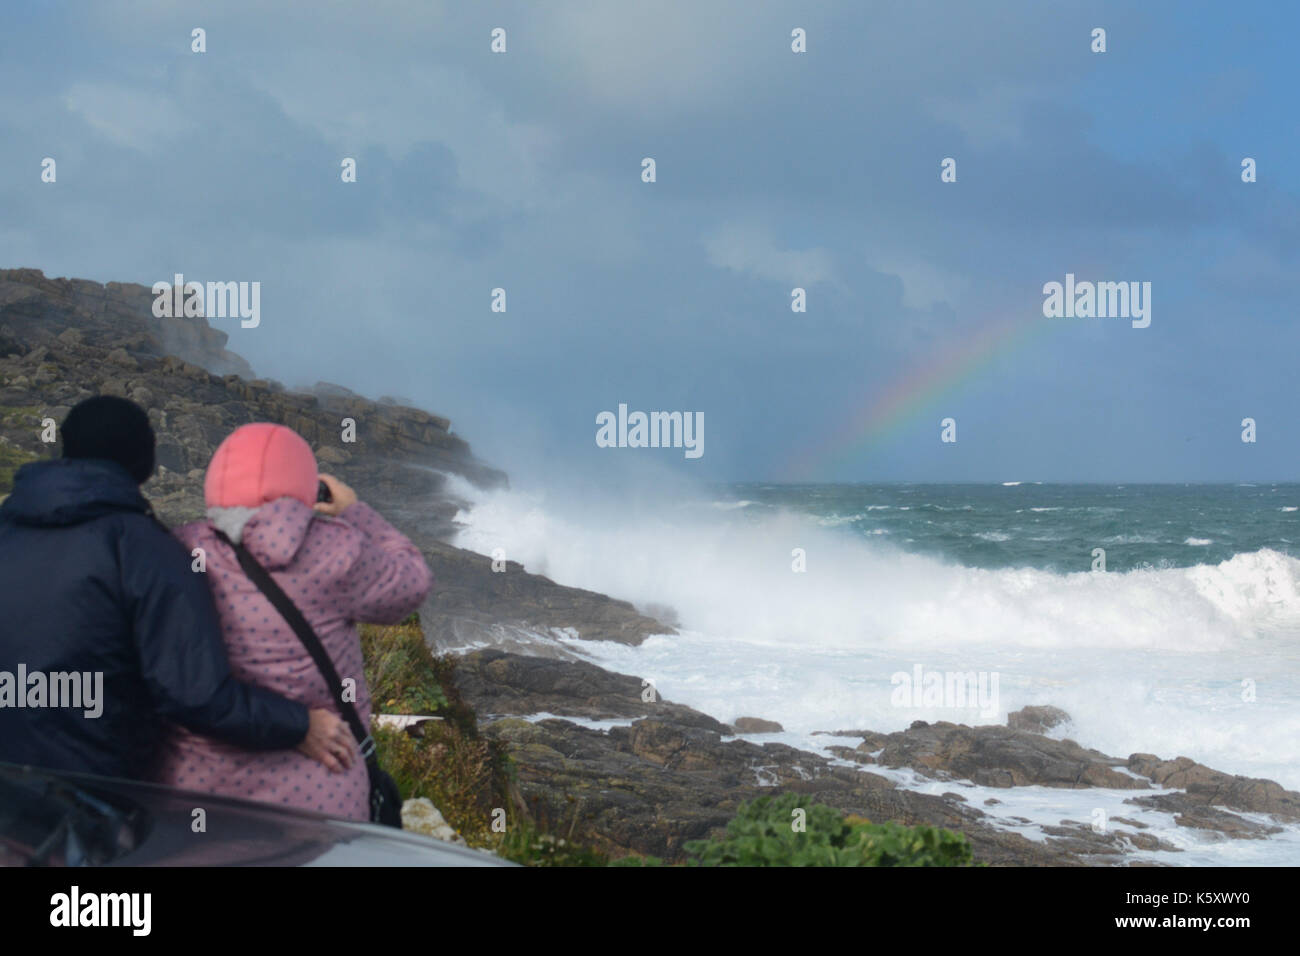 Sennen, Cornwall, UK. 11th Sep, 2017. UK Weather. Winds gusting upto 50 mph at Sennen Cove in north west Cornwall. Stock Photo